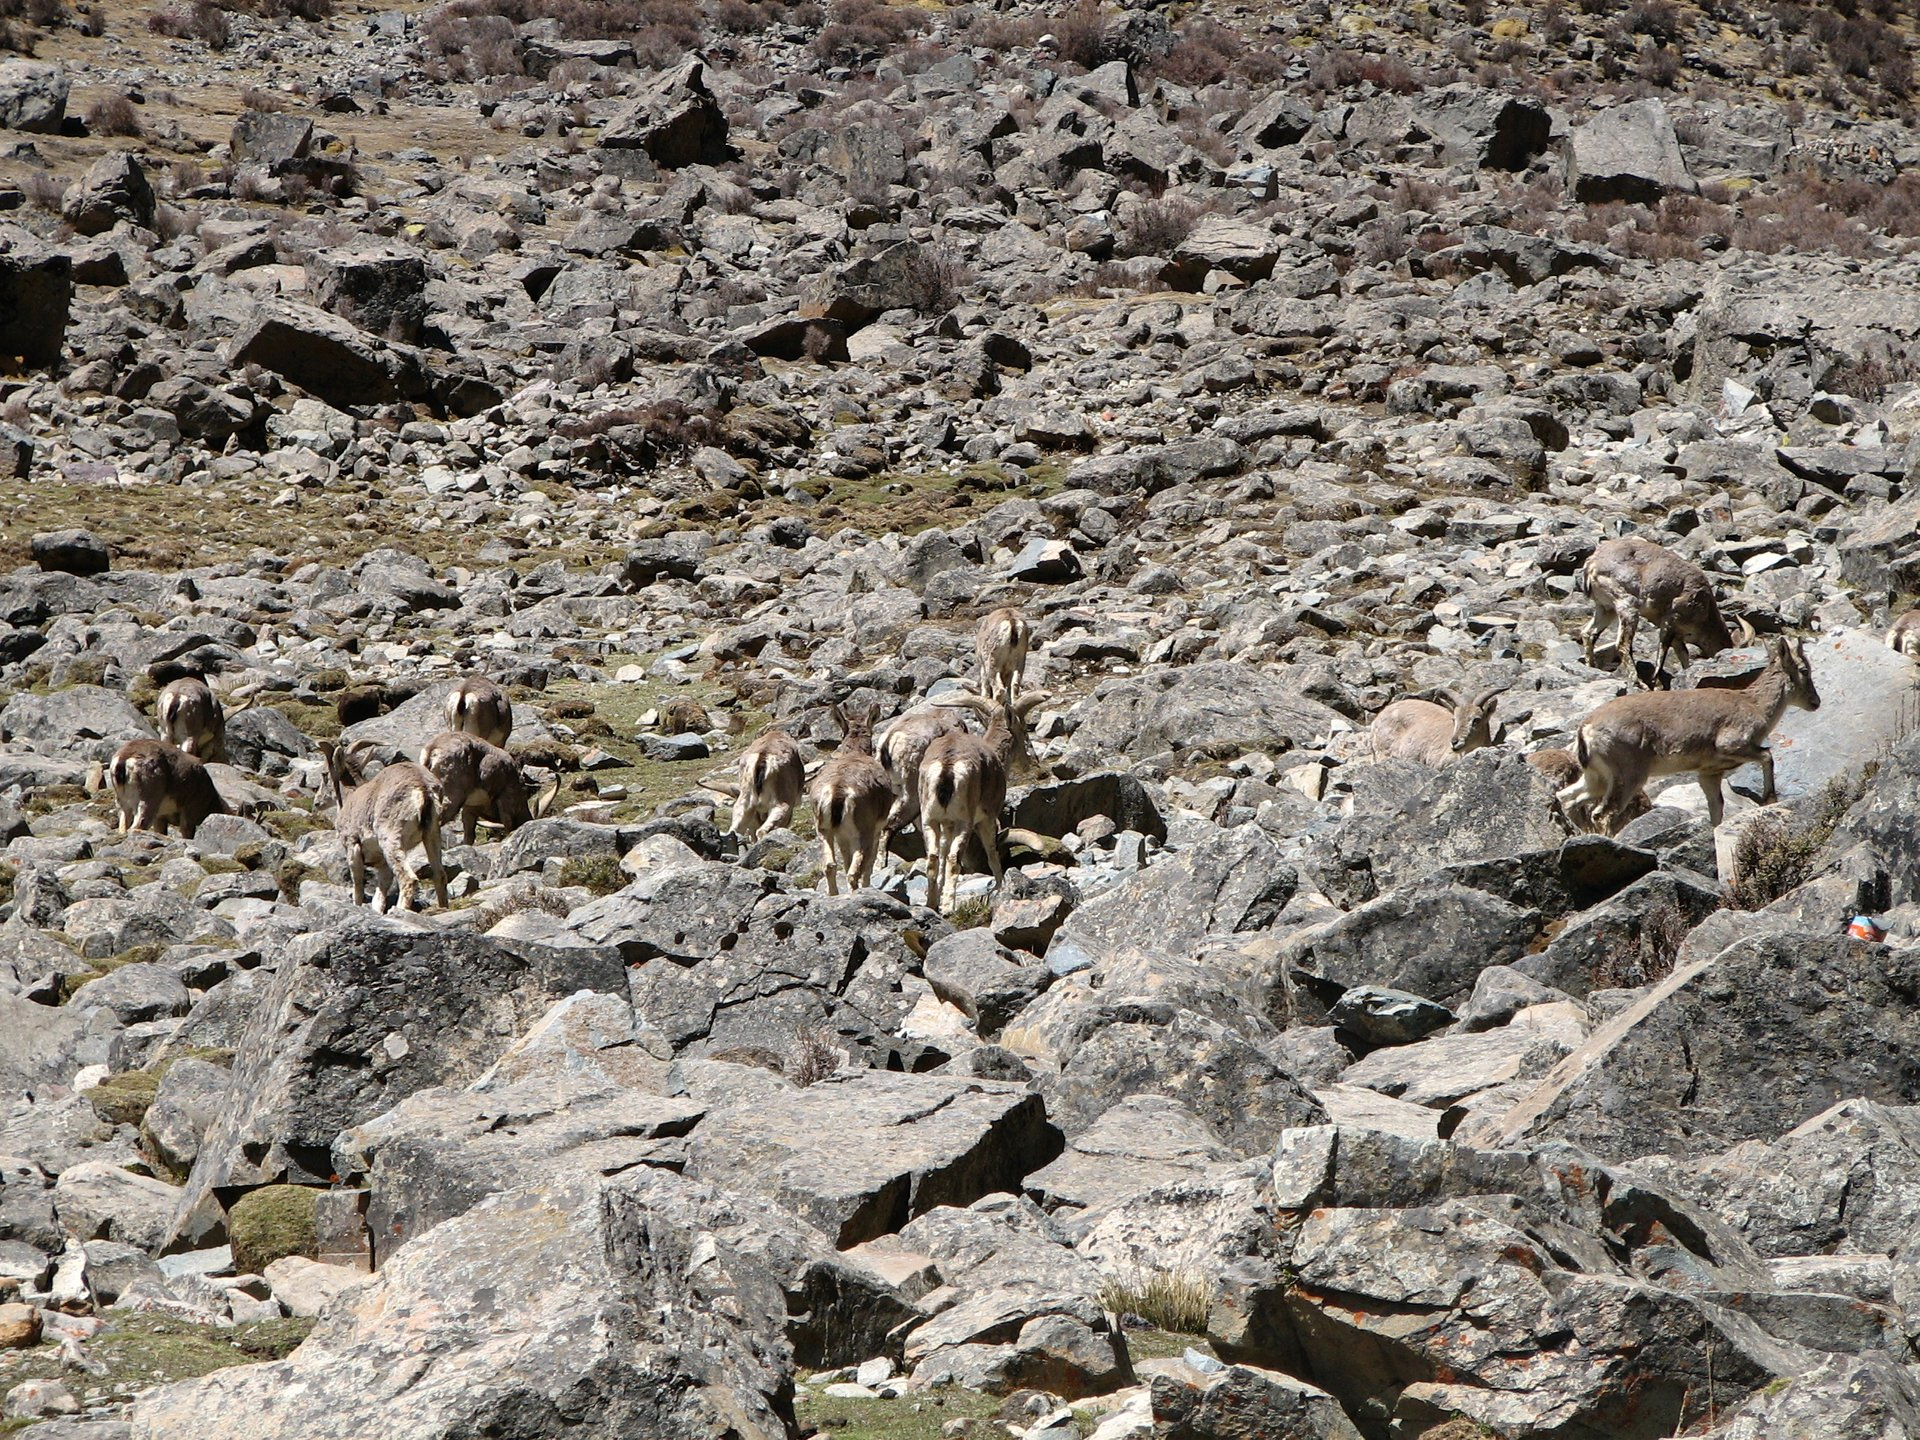 Tibetan Antelope (Chiru) in Tibet 2019 - Best Time